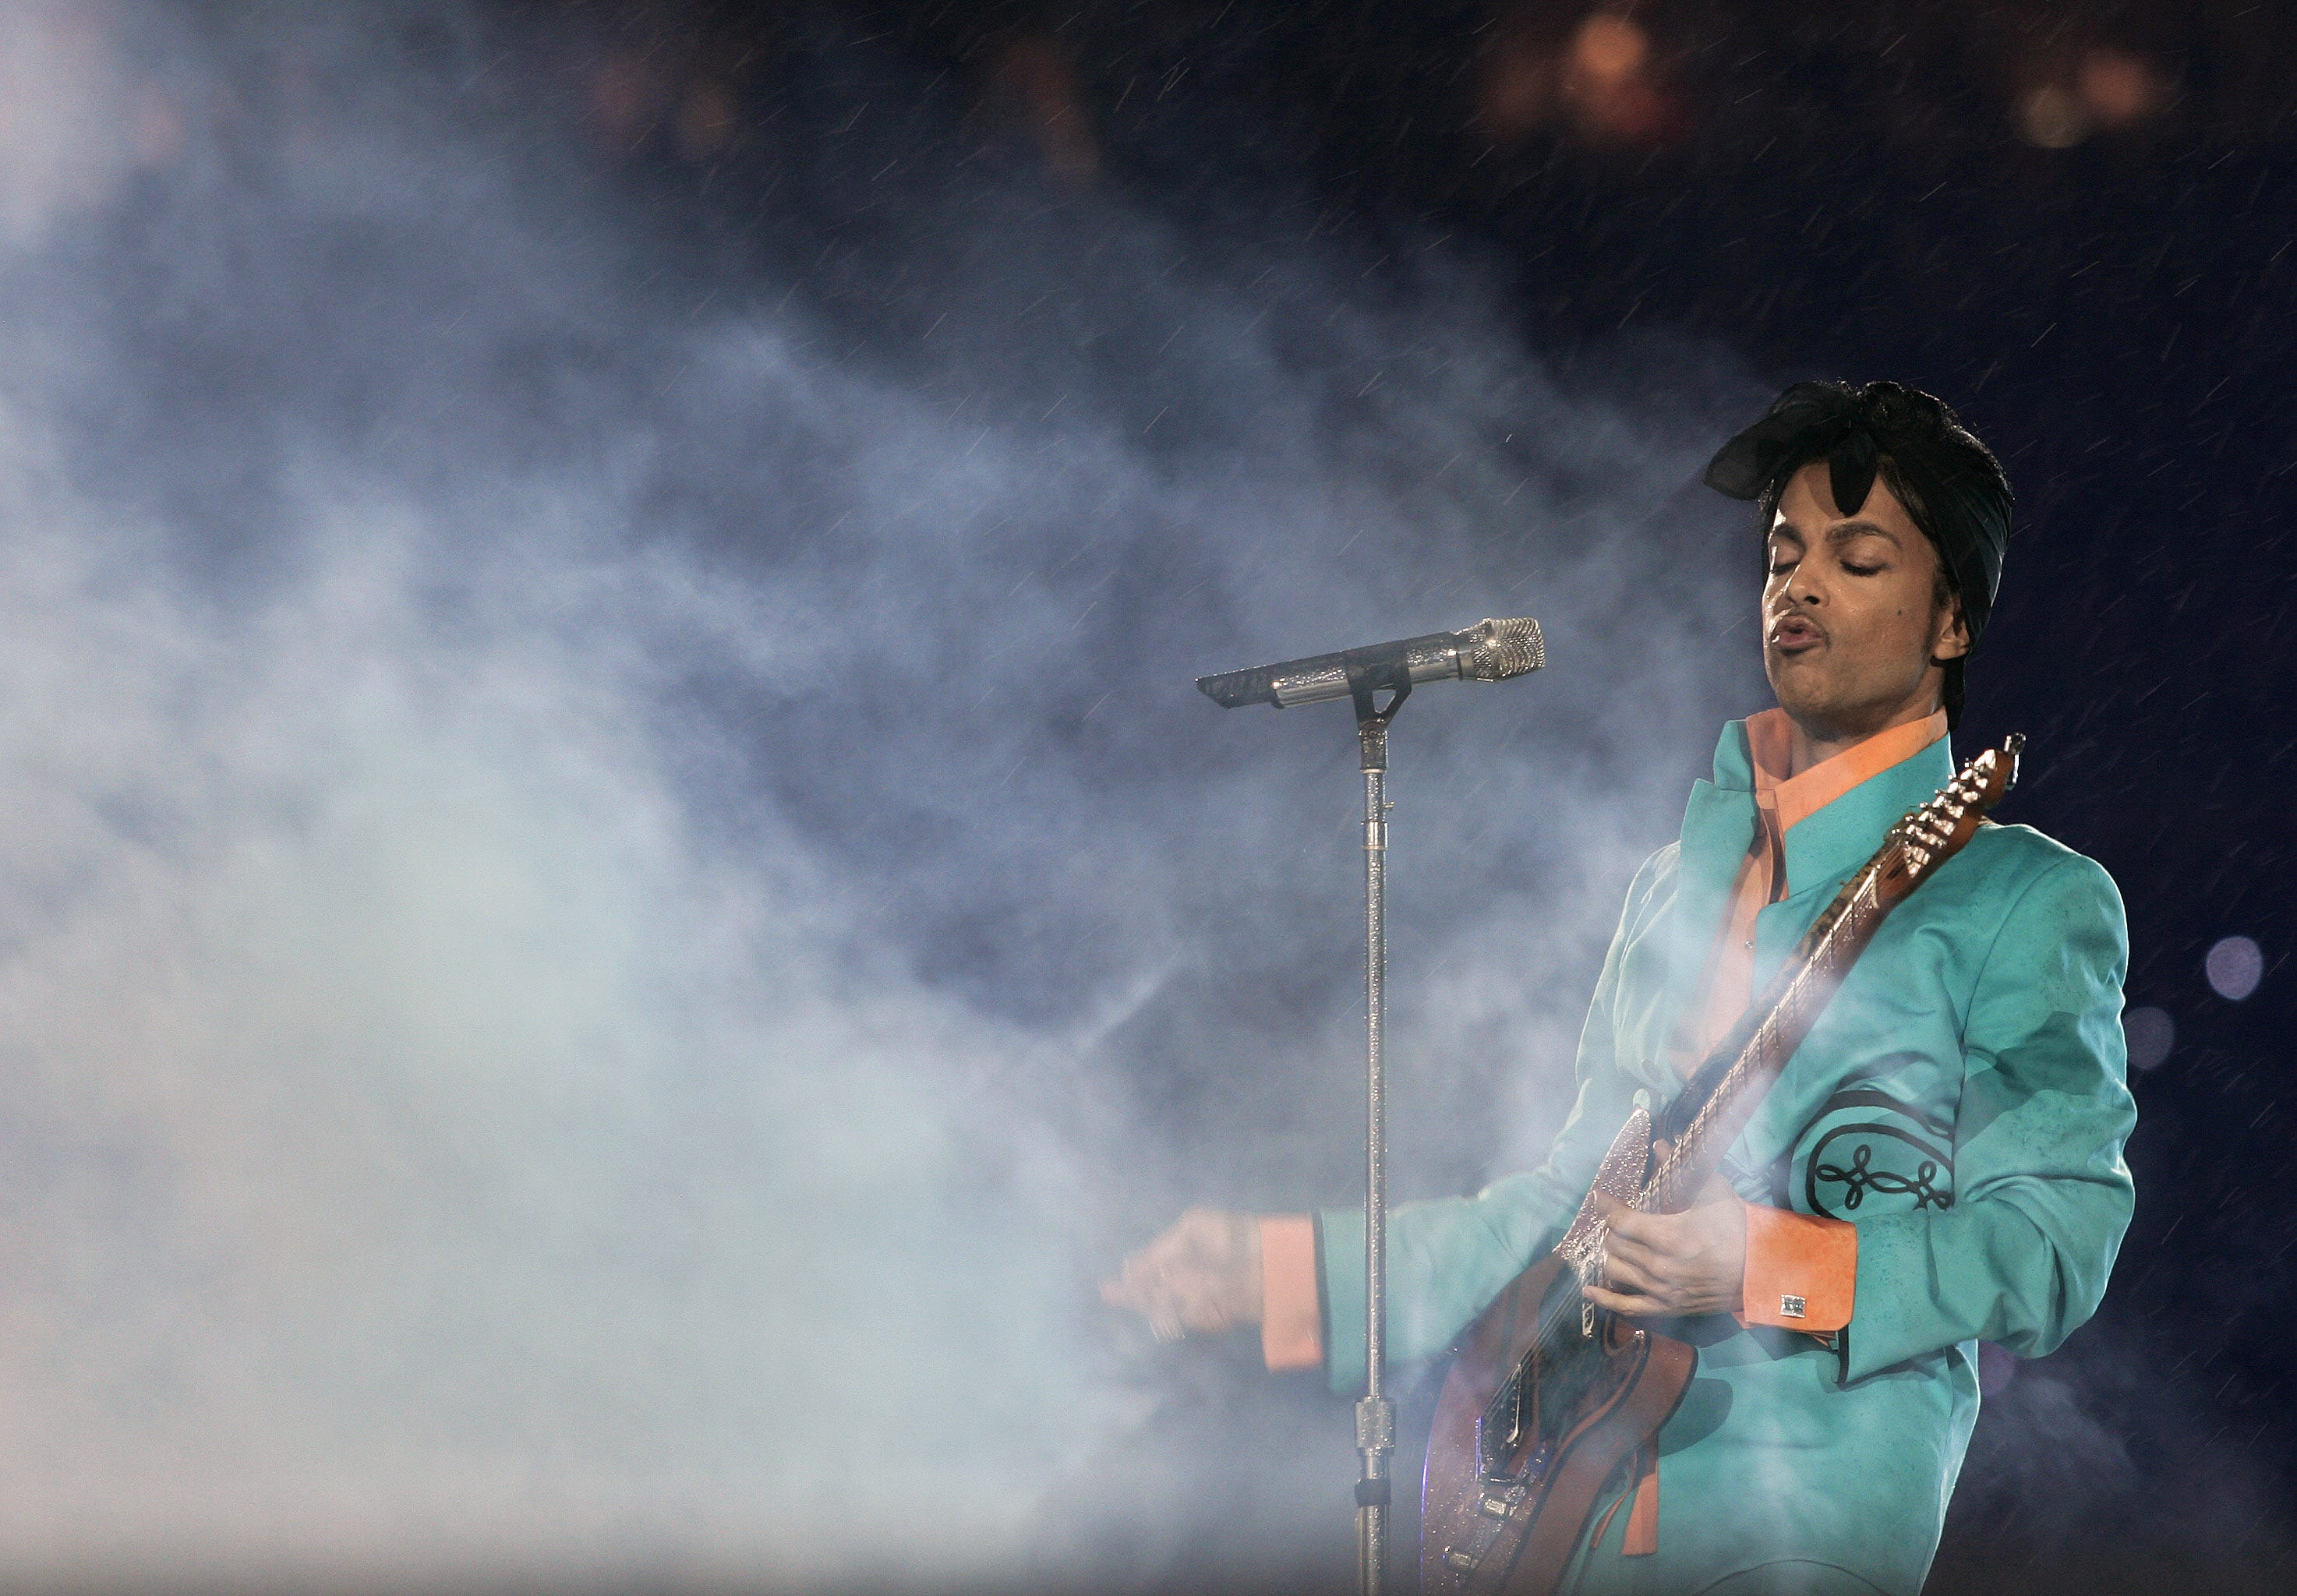 Prince performs in 2007 during half-time at the Super Bowl.